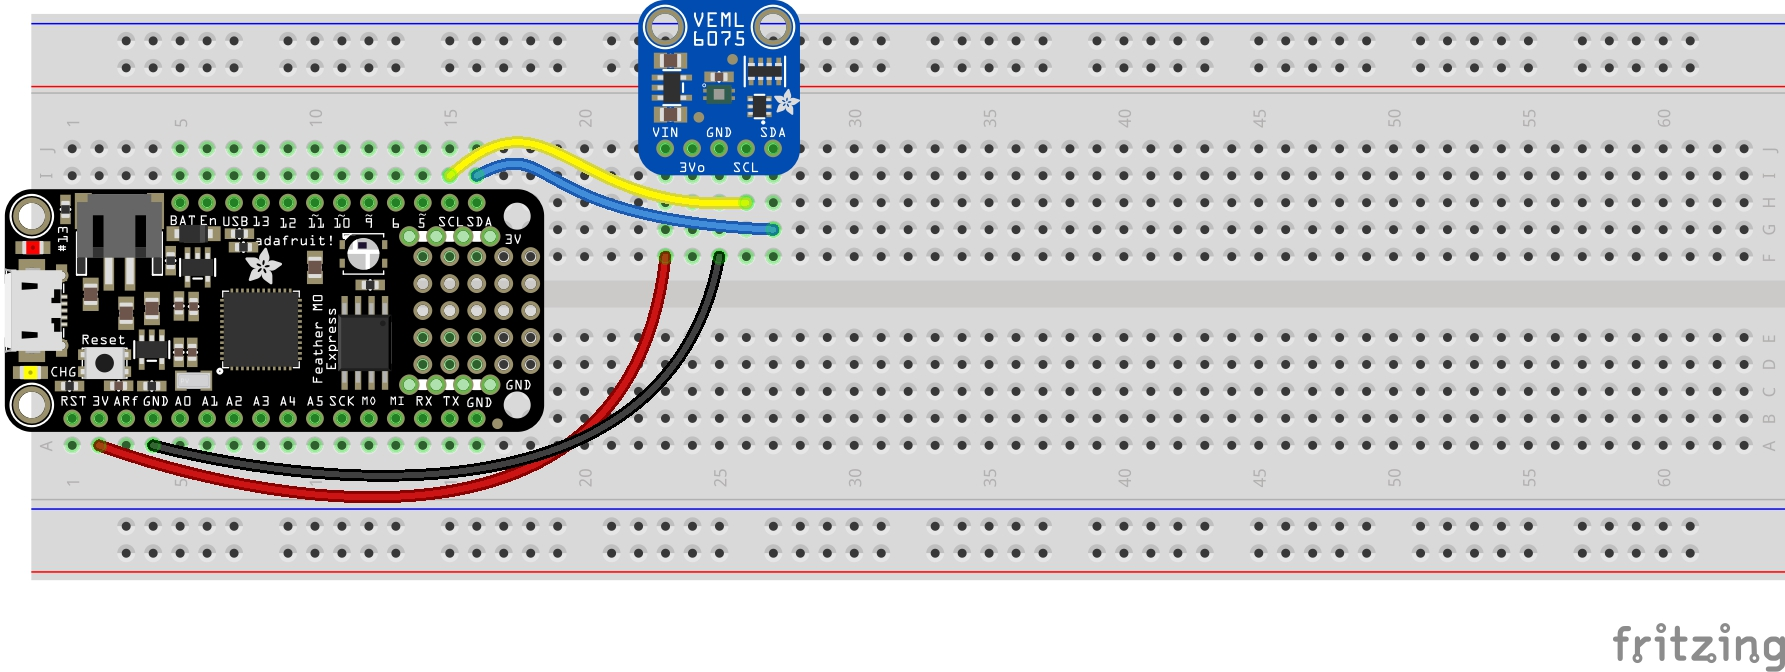 adafruit_products_FeatherM0_VEML6075_I2C_bb.jpg